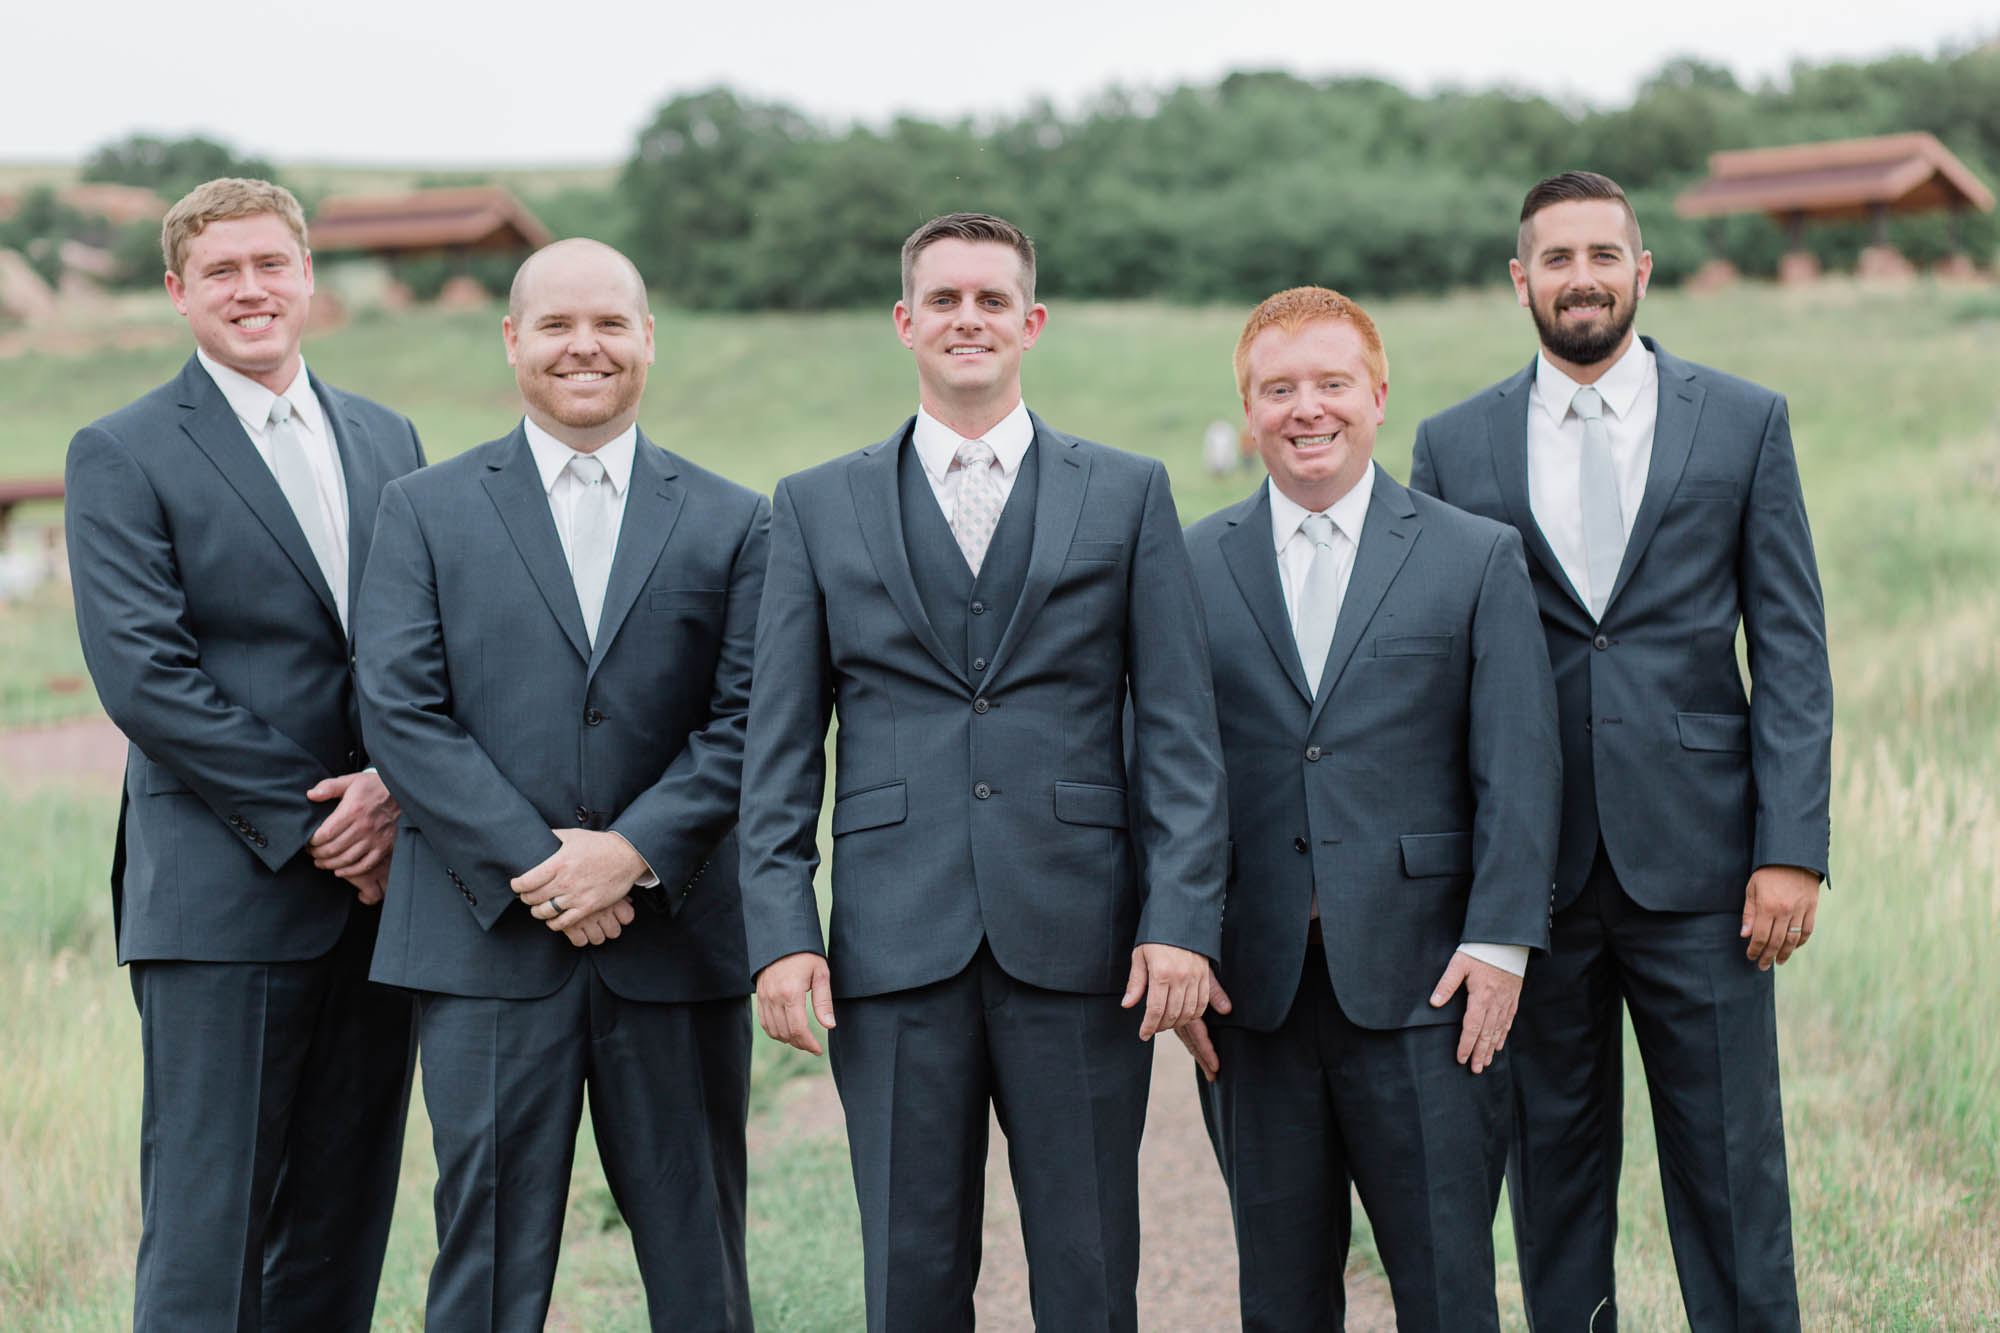 South Valley Park Groomsmen Photography